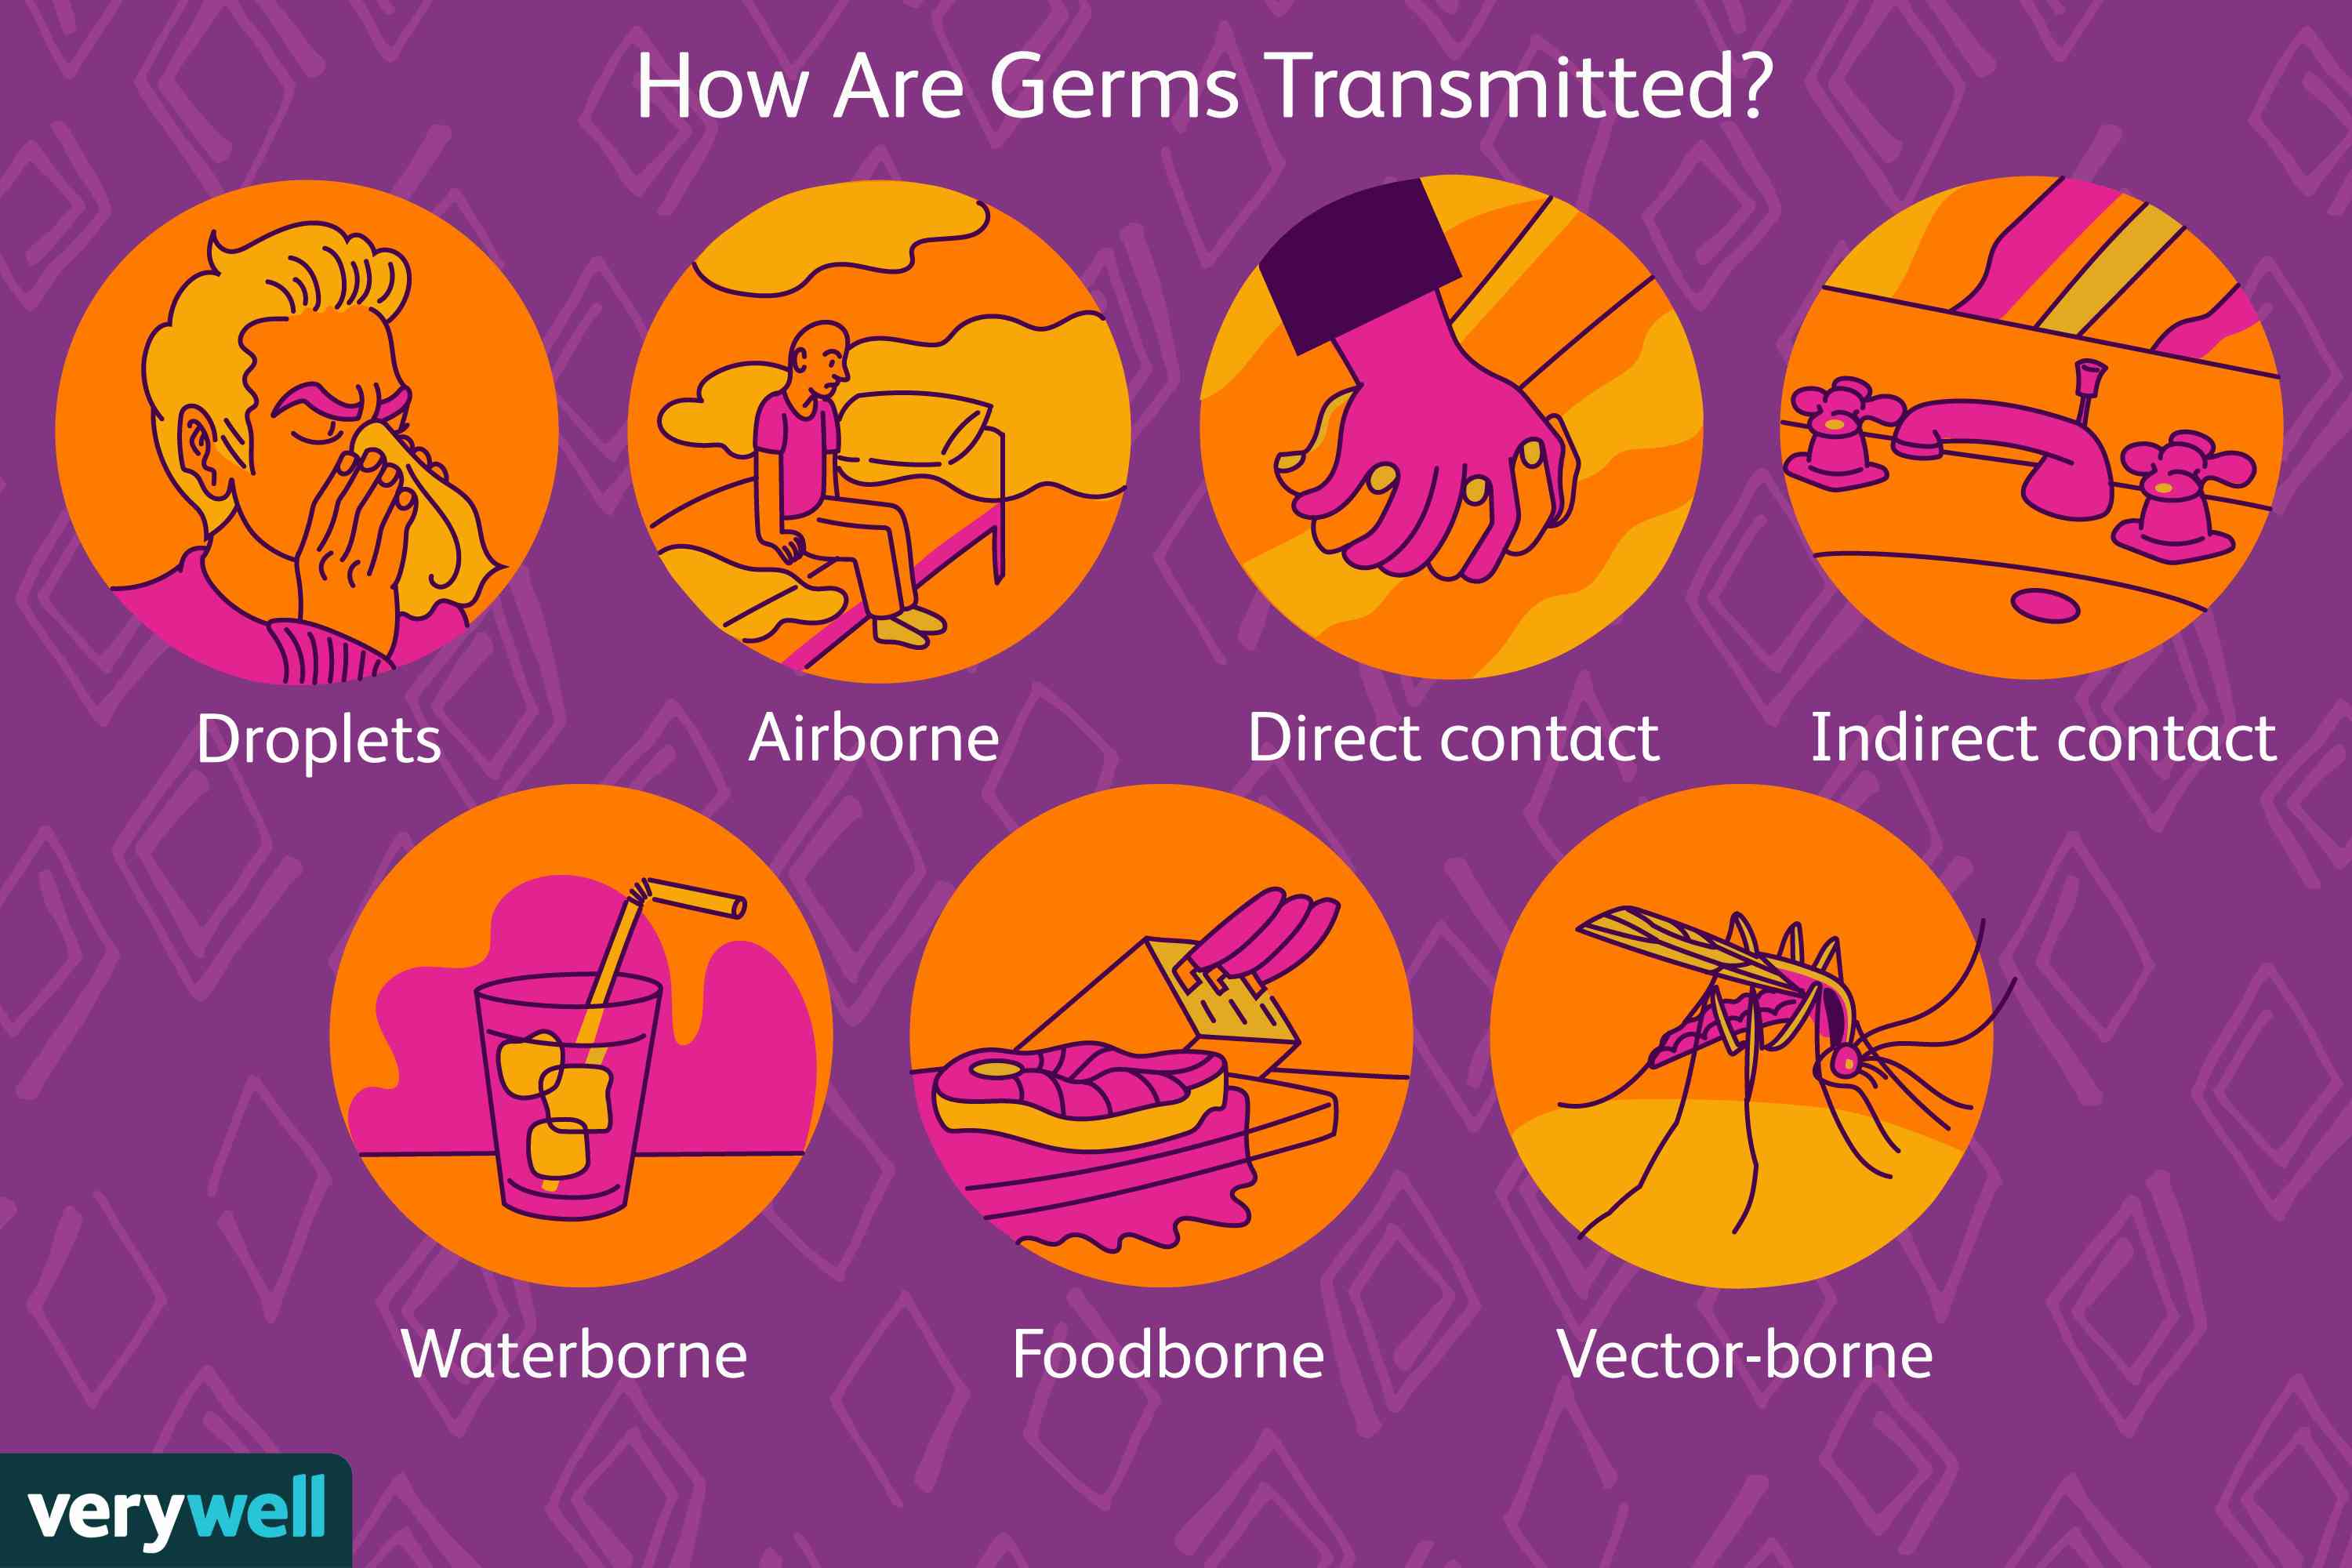 How Are Germs Transmitted?